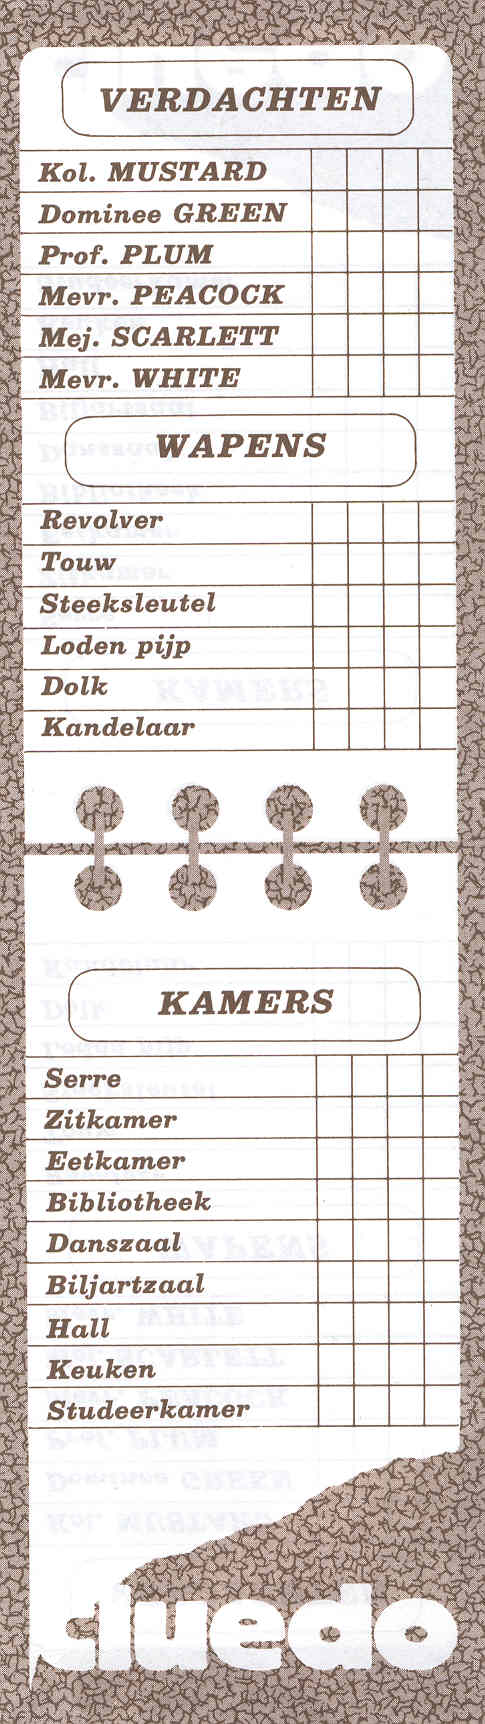 Gallery For gt Clue Game Sheets Pdf